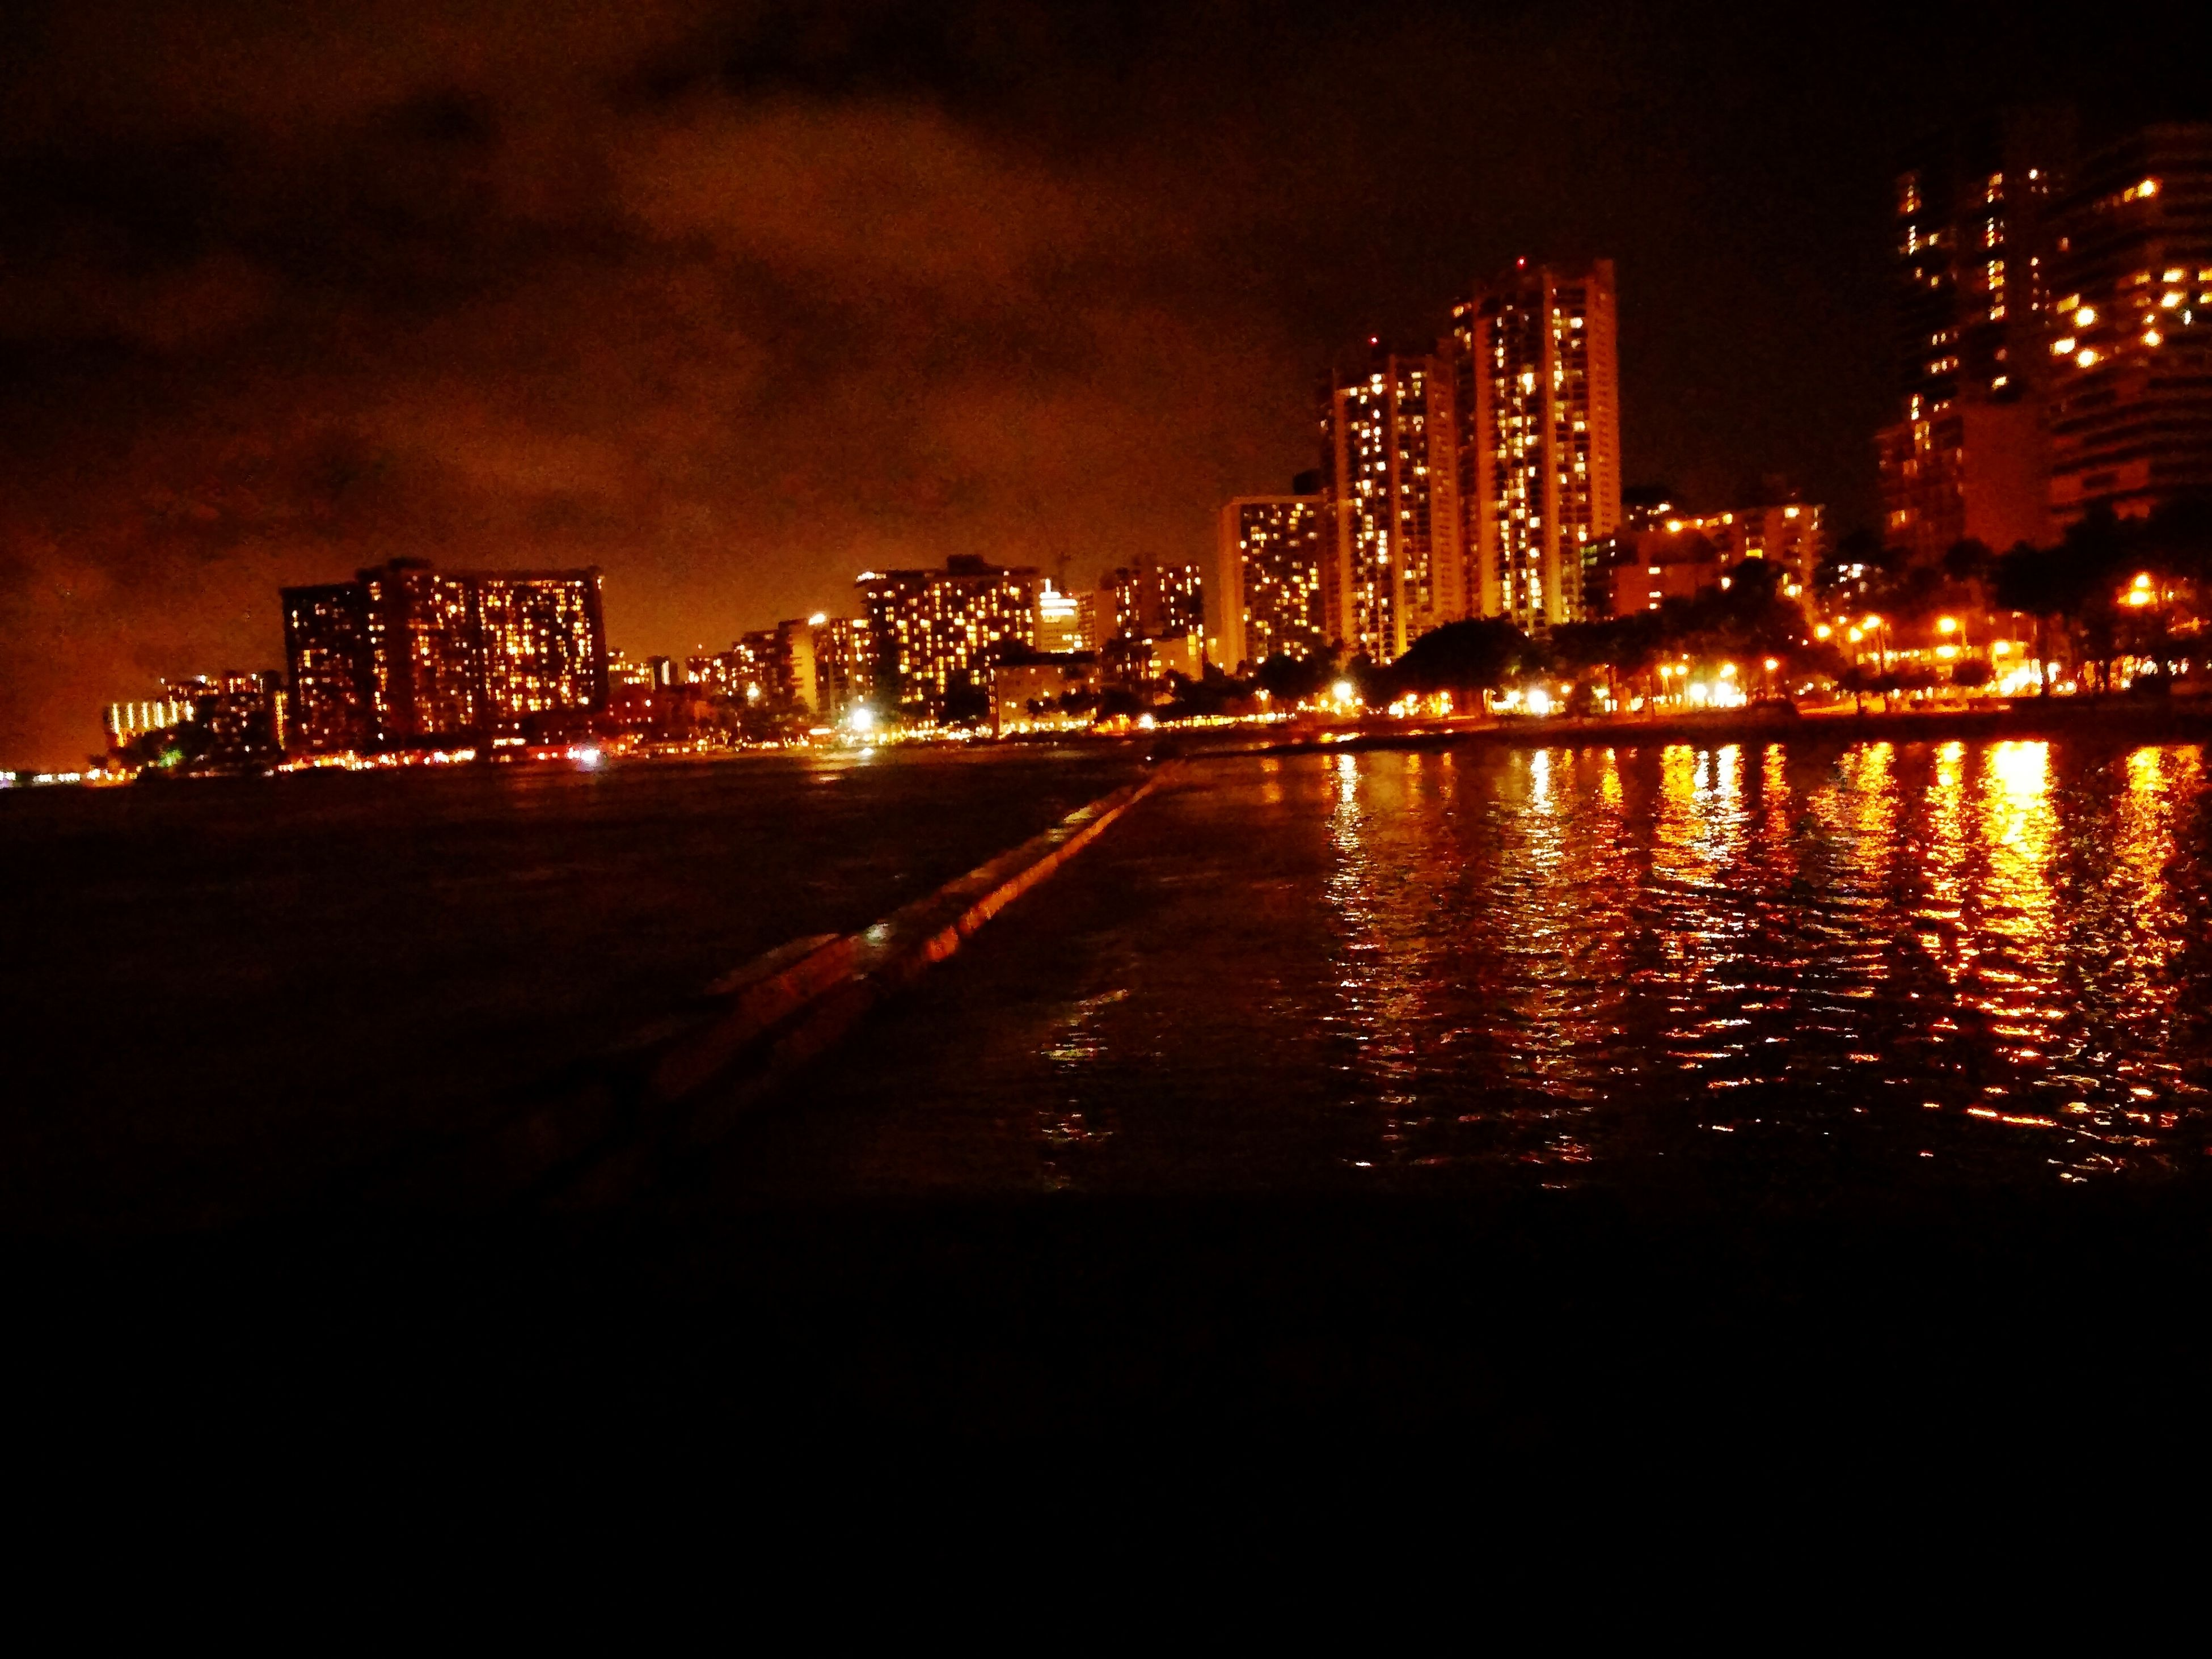 illuminated, night, building exterior, city, architecture, water, built structure, cityscape, sky, river, waterfront, reflection, long exposure, skyscraper, city life, light - natural phenomenon, urban skyline, sea, residential building, lighting equipment